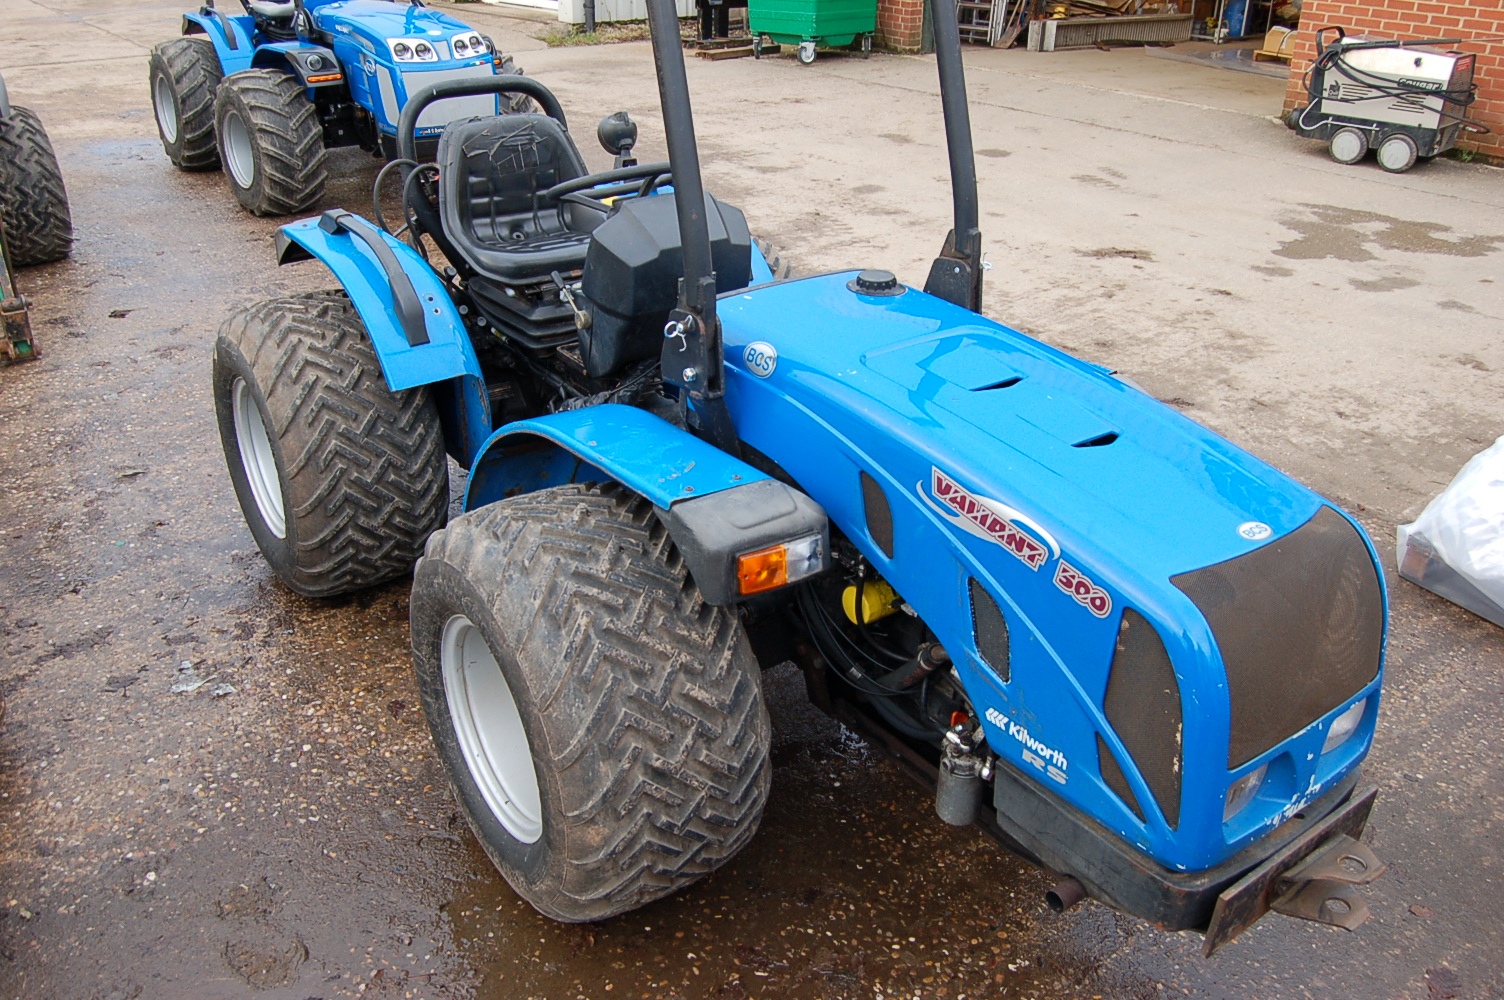 Used Bcs Valiant 500 Rs Reversible Tractor Kilworth